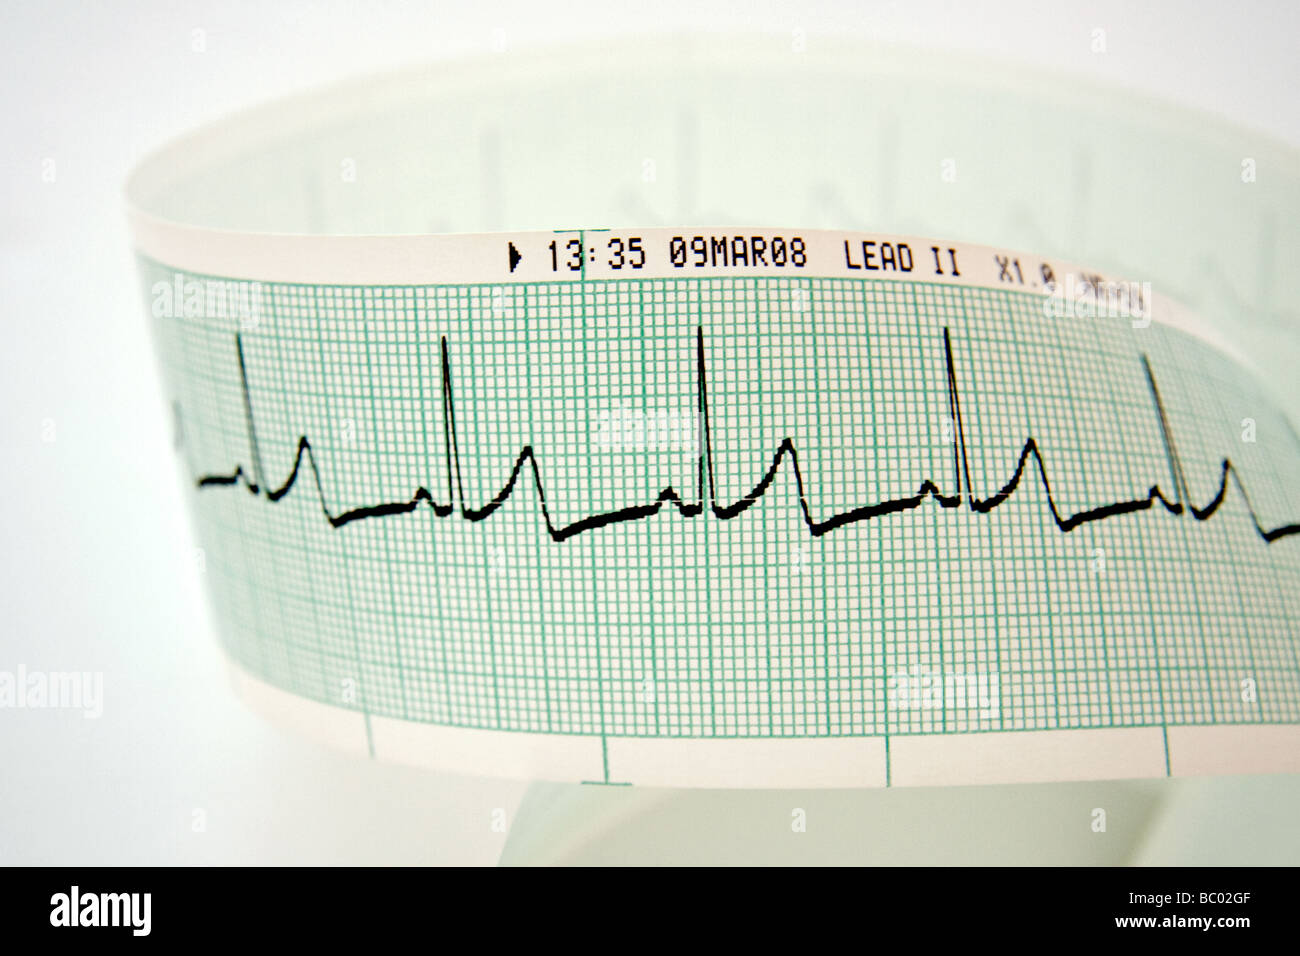 Heart rate printout - Stock Image